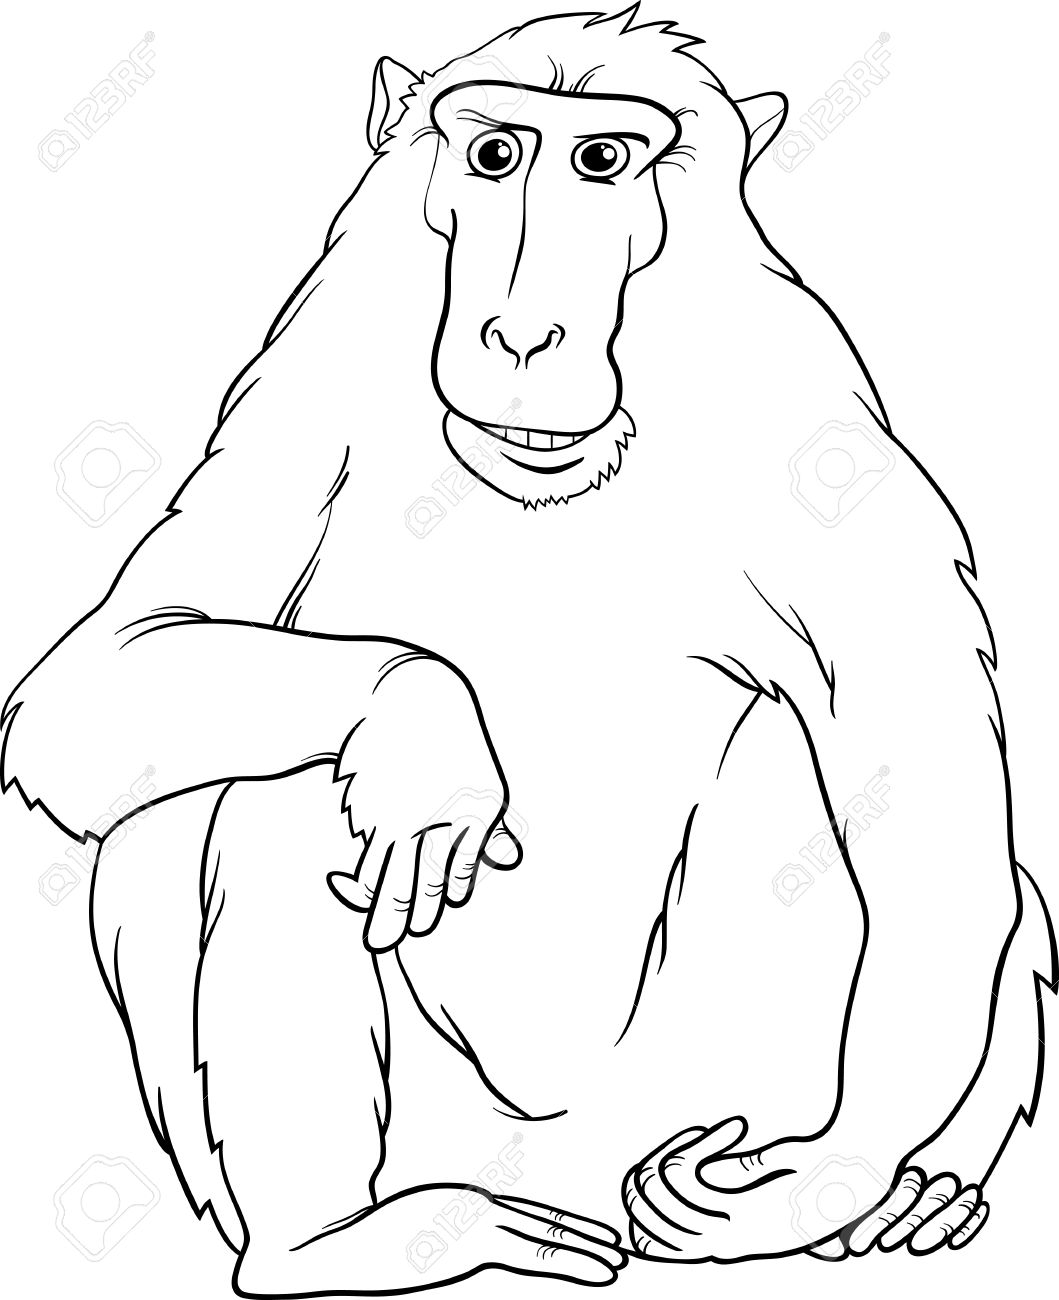 Black And White Cartoon Illustration Of Funny Macaque Monkey Primate Animal For Coloring Book Stock Vector